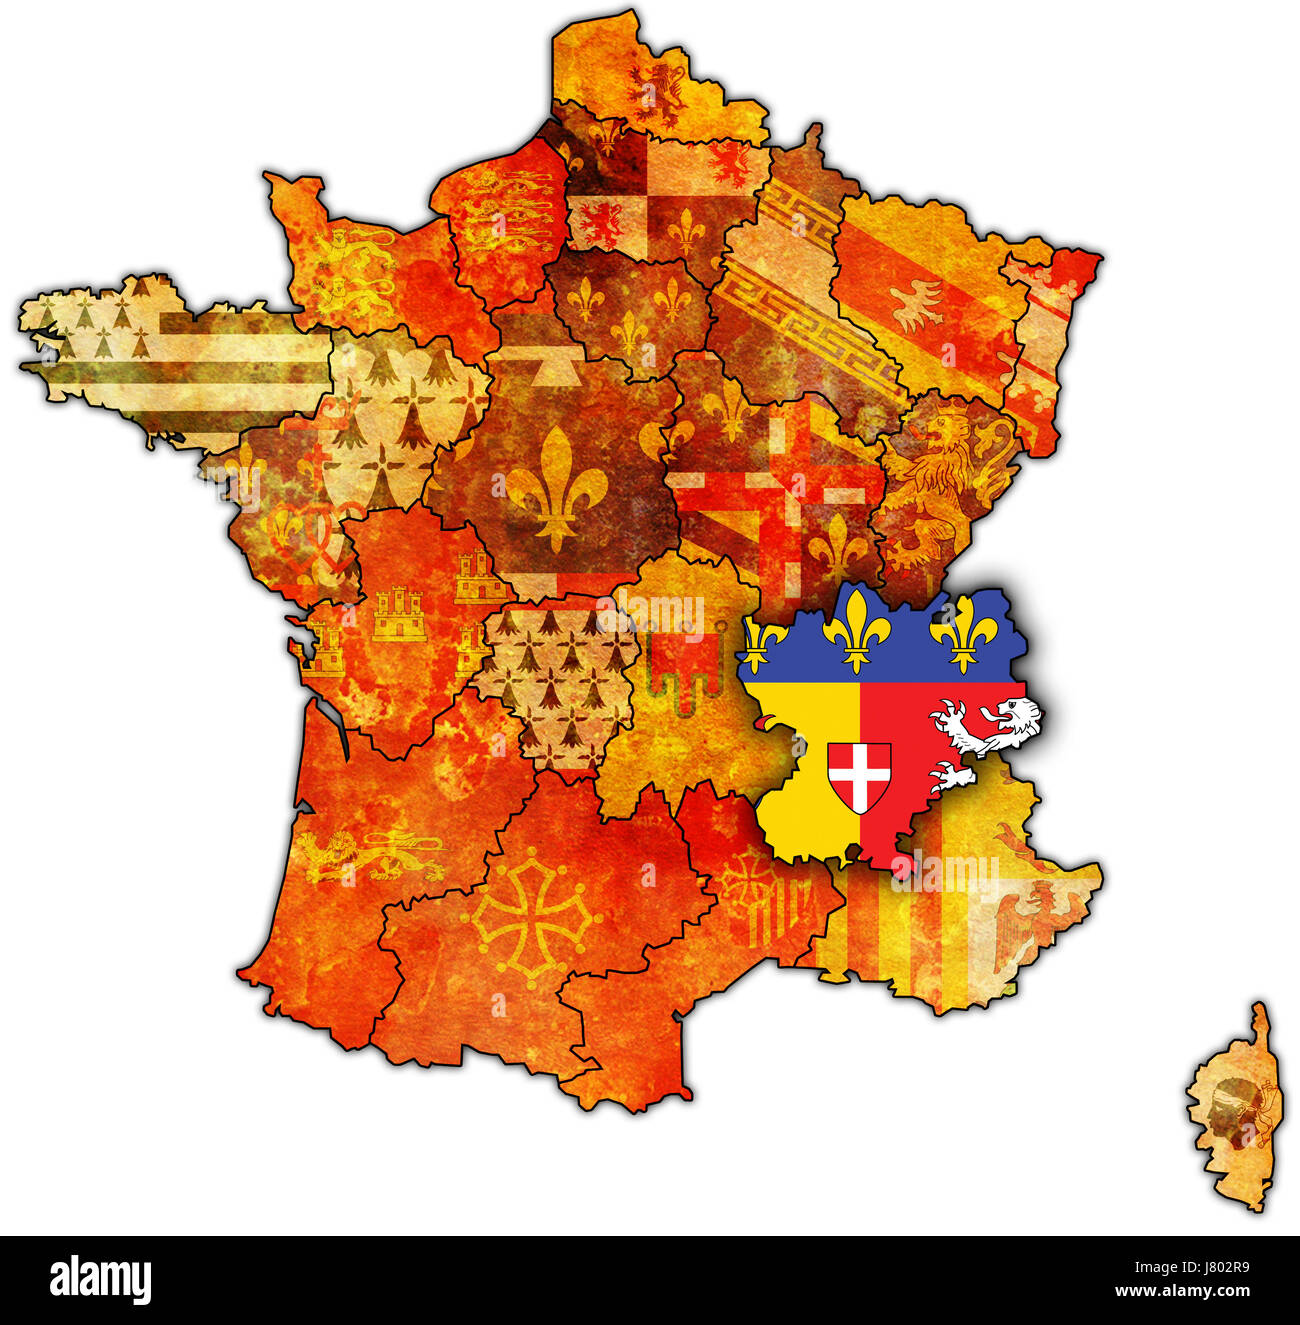 France flag region map atlas map of the world political colour france flag region map atlas map of the world political colour europe wall gumiabroncs Gallery